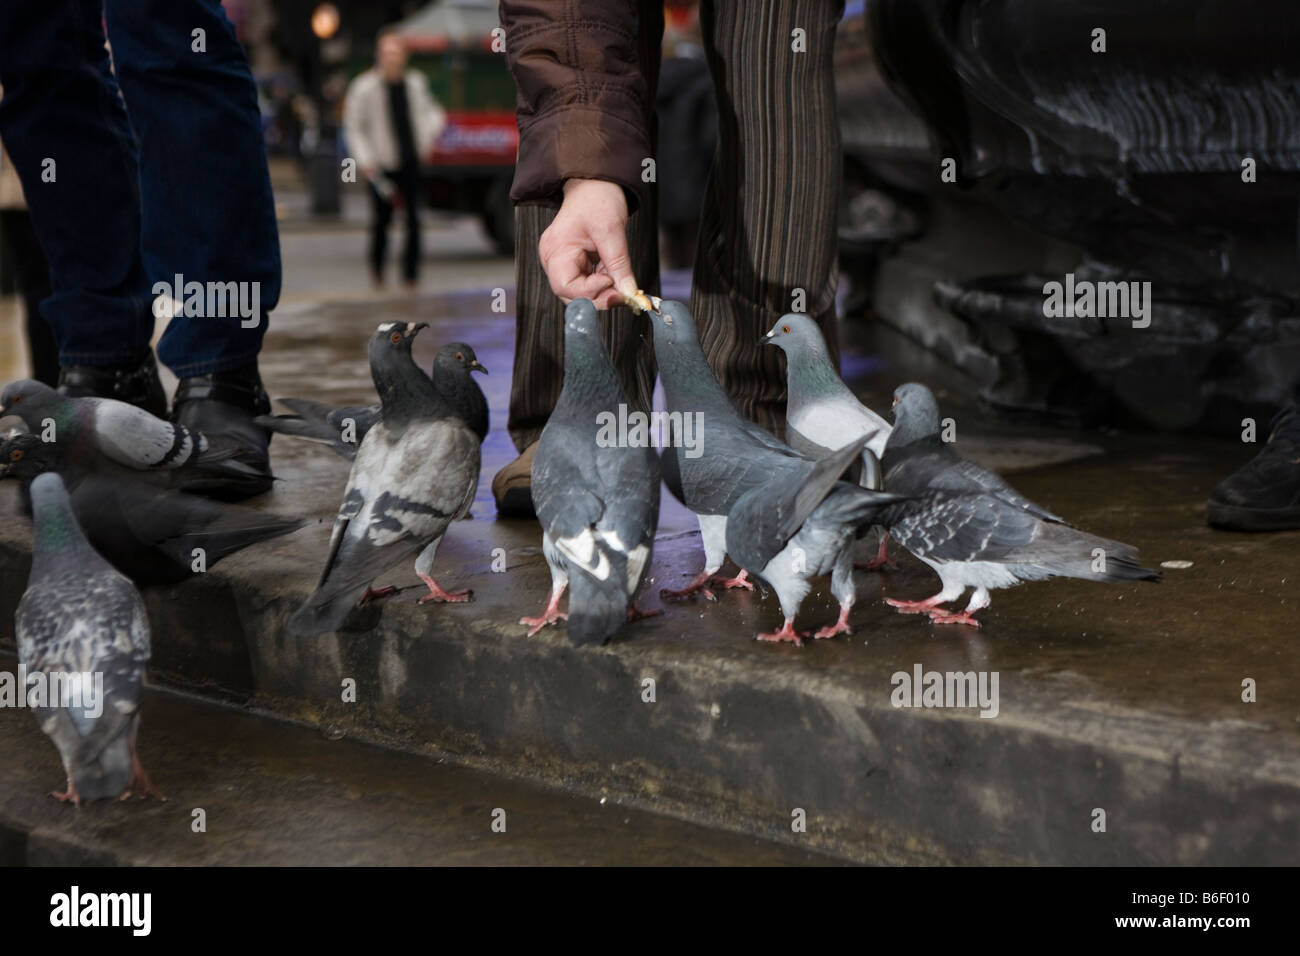 pigeons being fed in London city centre - Stock Image